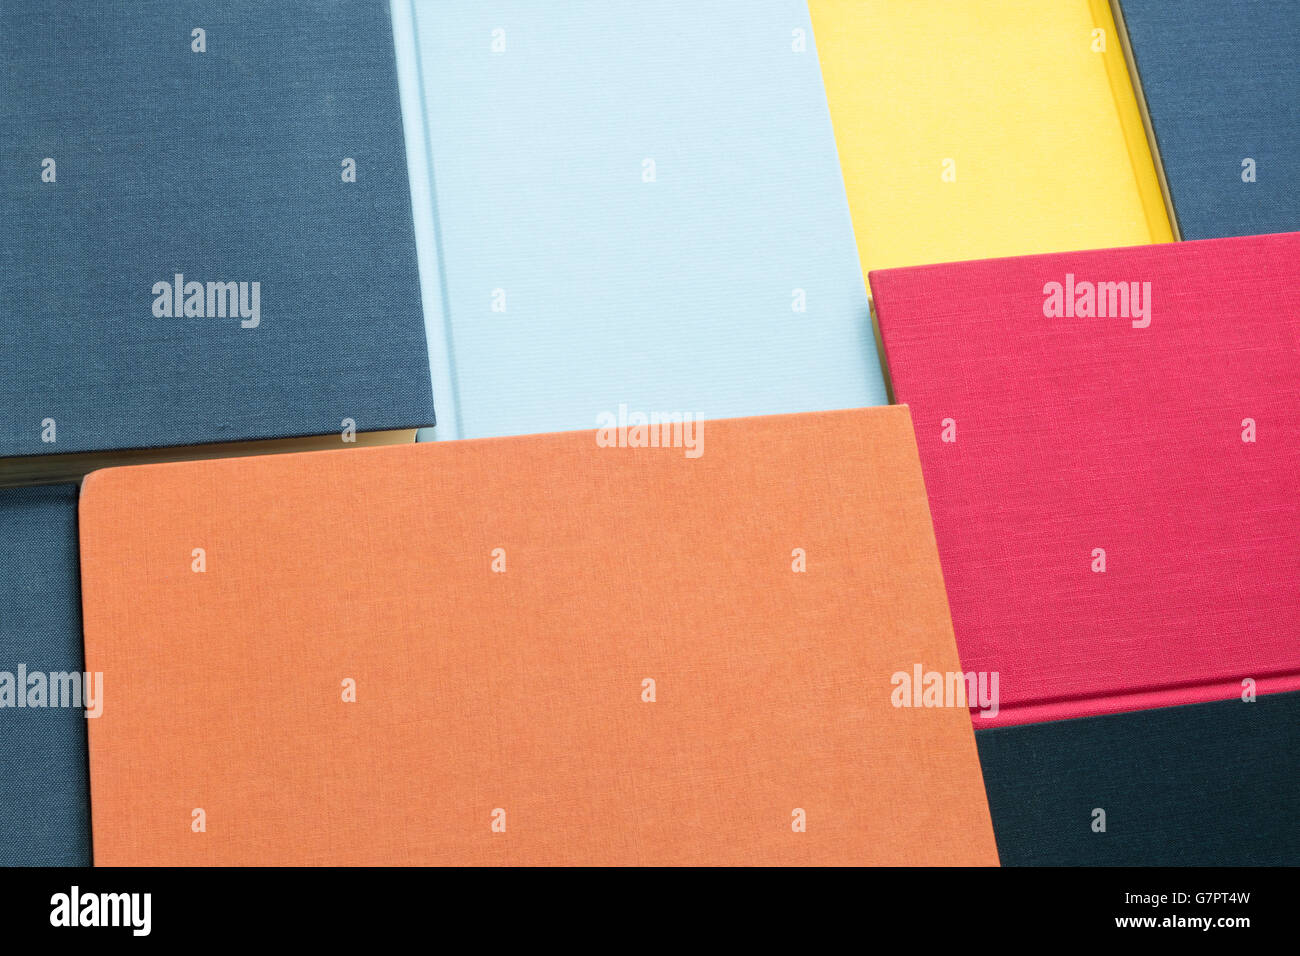 Background of colorful book covers Stock Photo: 108066697 - Alamy